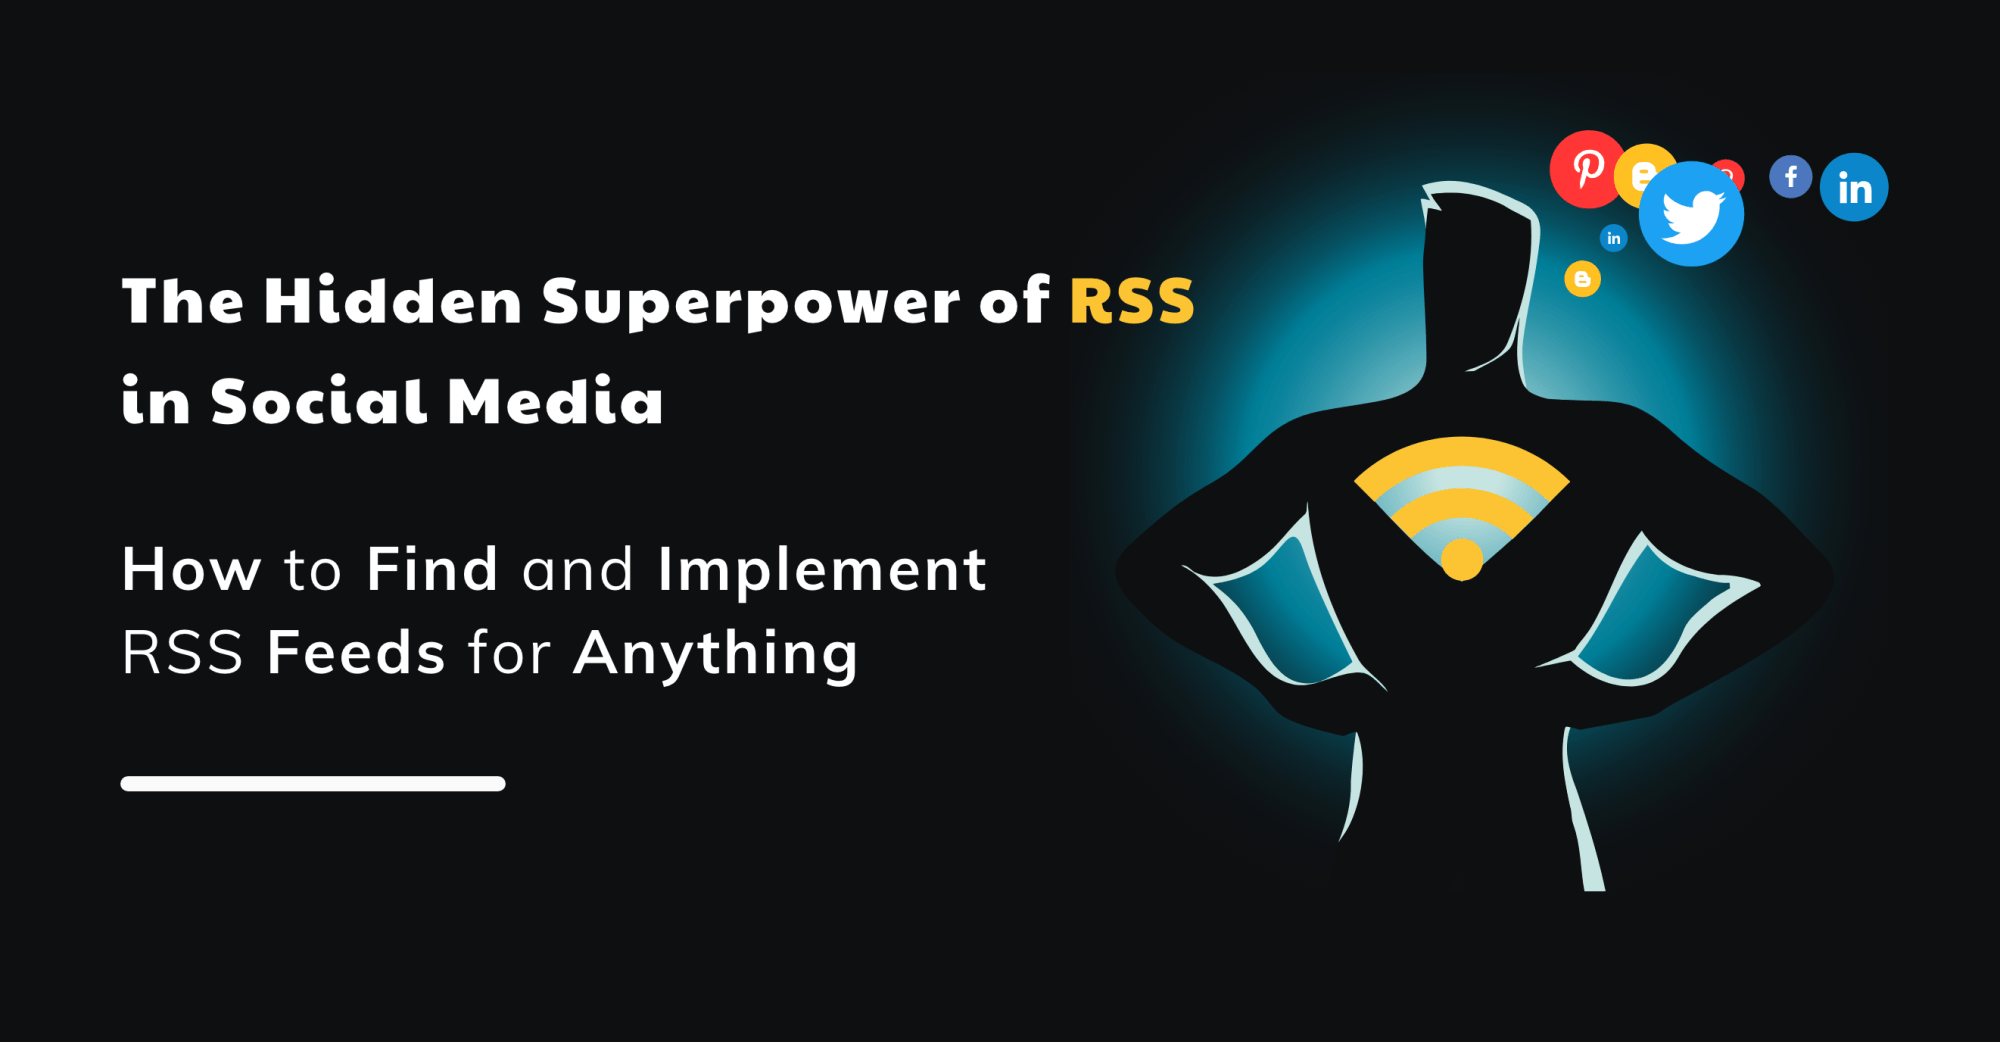 Superpower of RSS- ContentStudio